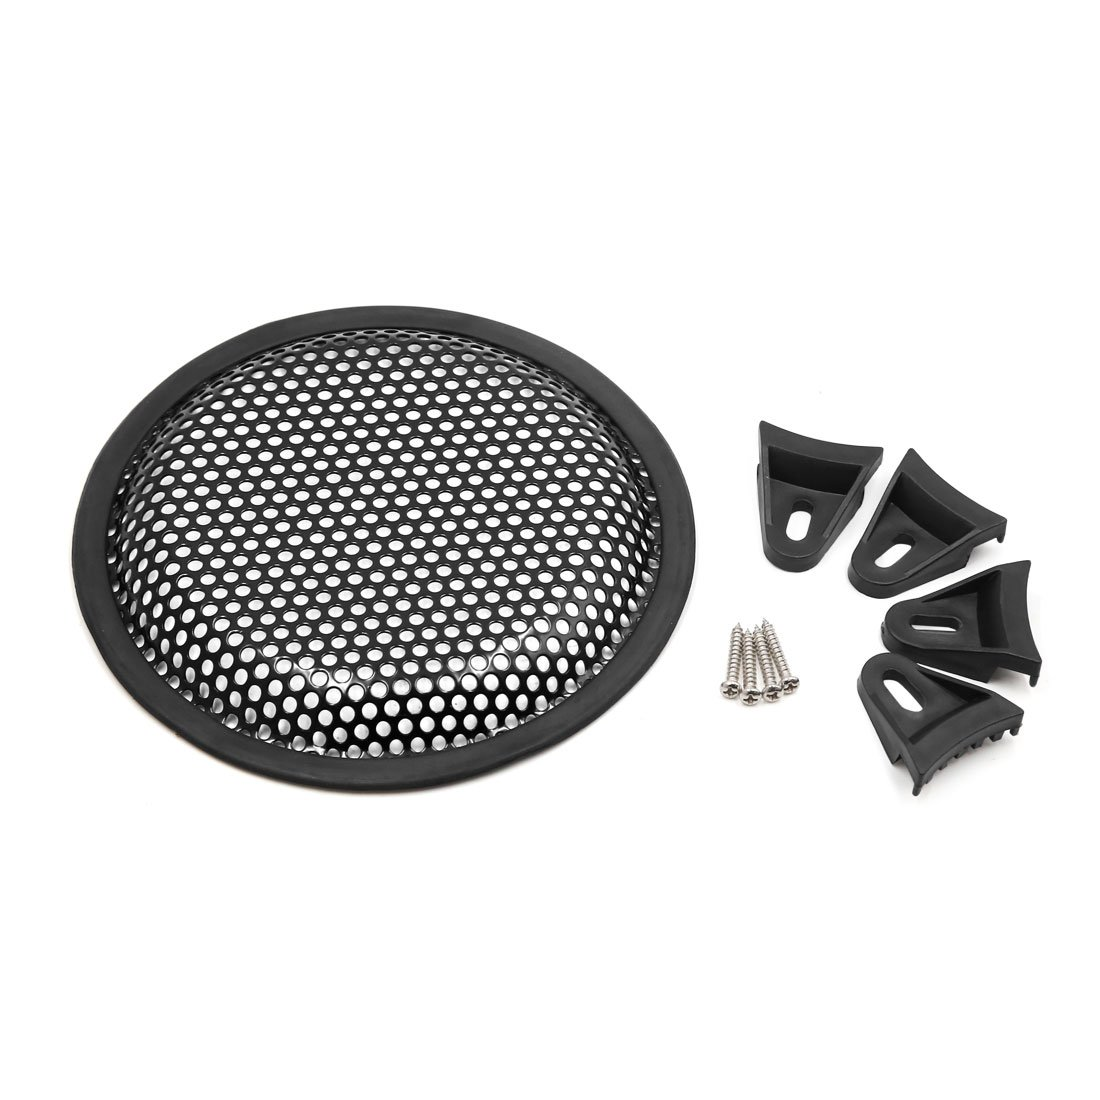 Uxcell a16060400ux0127 6.5' Car Audio Speaker Mesh Sub Woofer Subwoofer Grill Dust Cover Protector